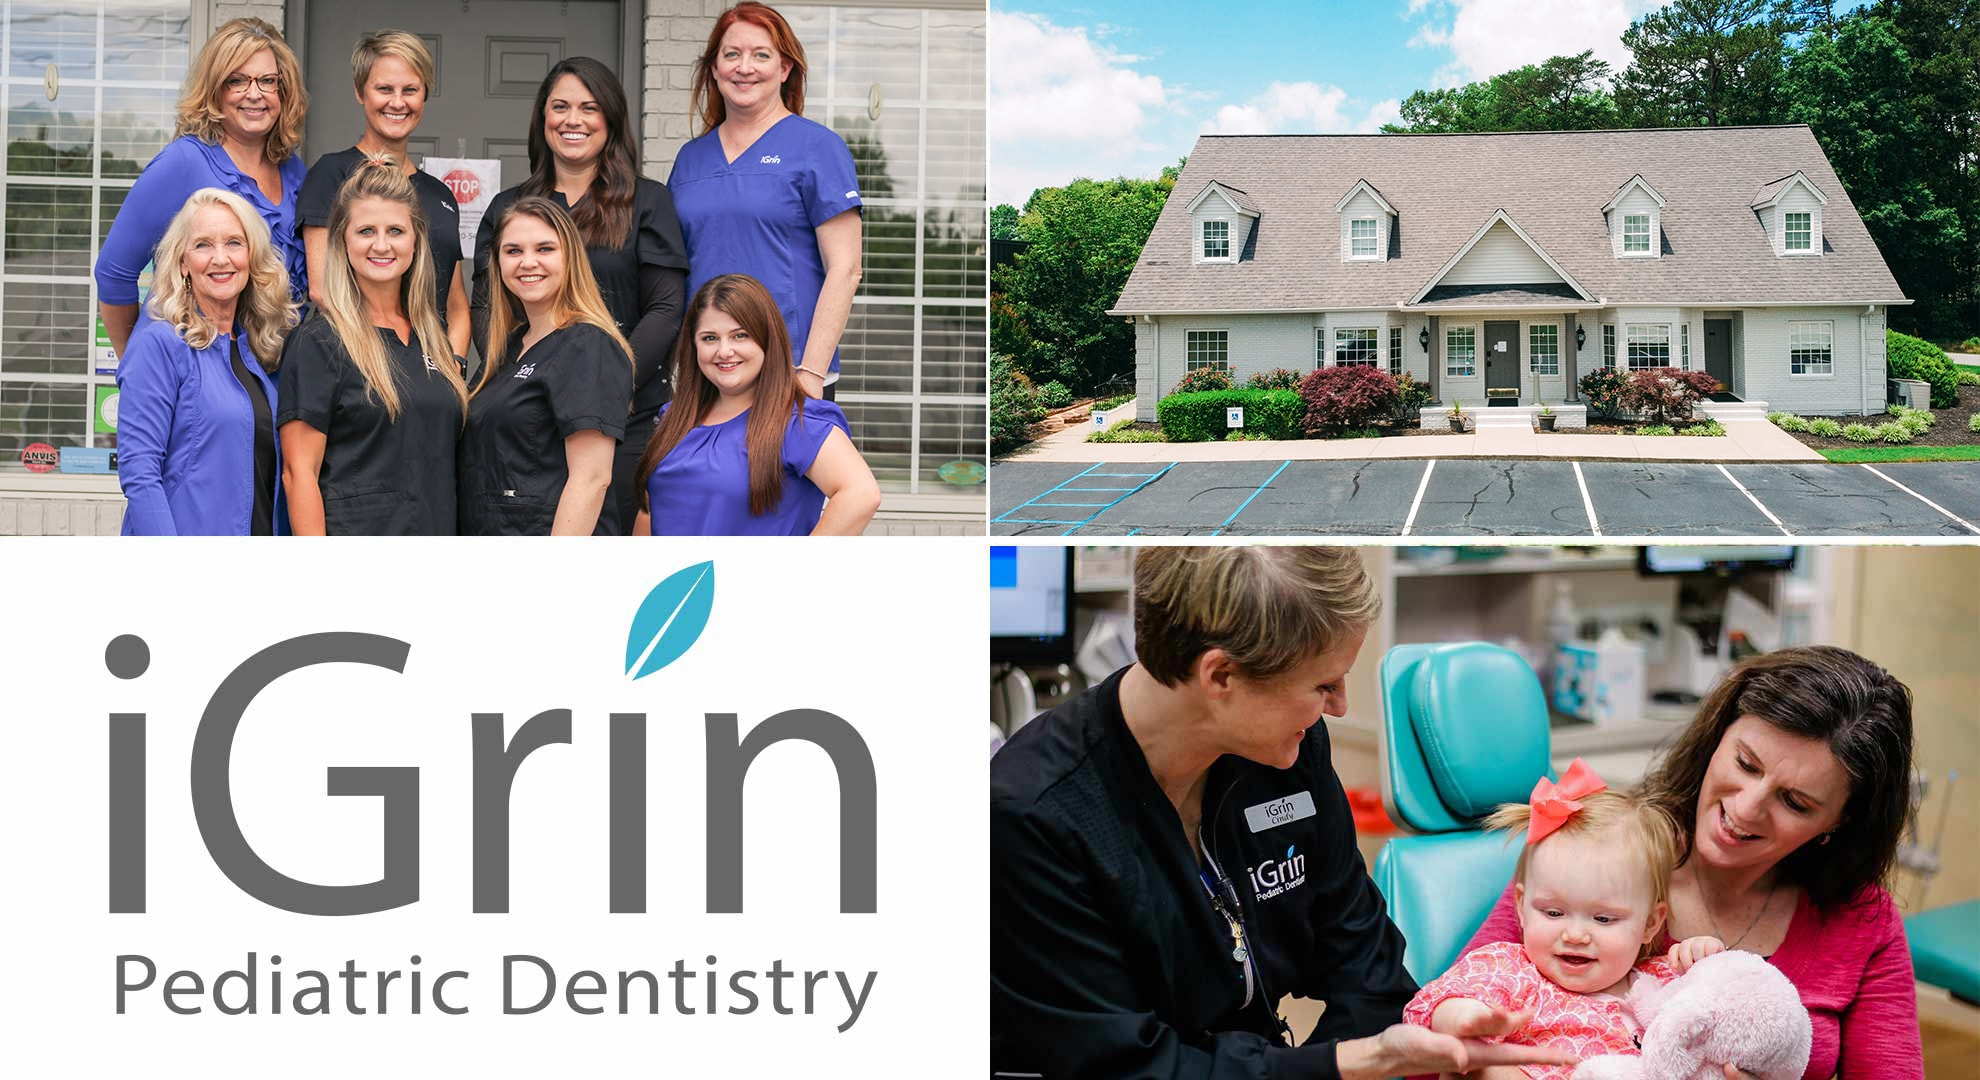 Collage of the iGrin Pediatric Dentistry team at Powdersville, SC